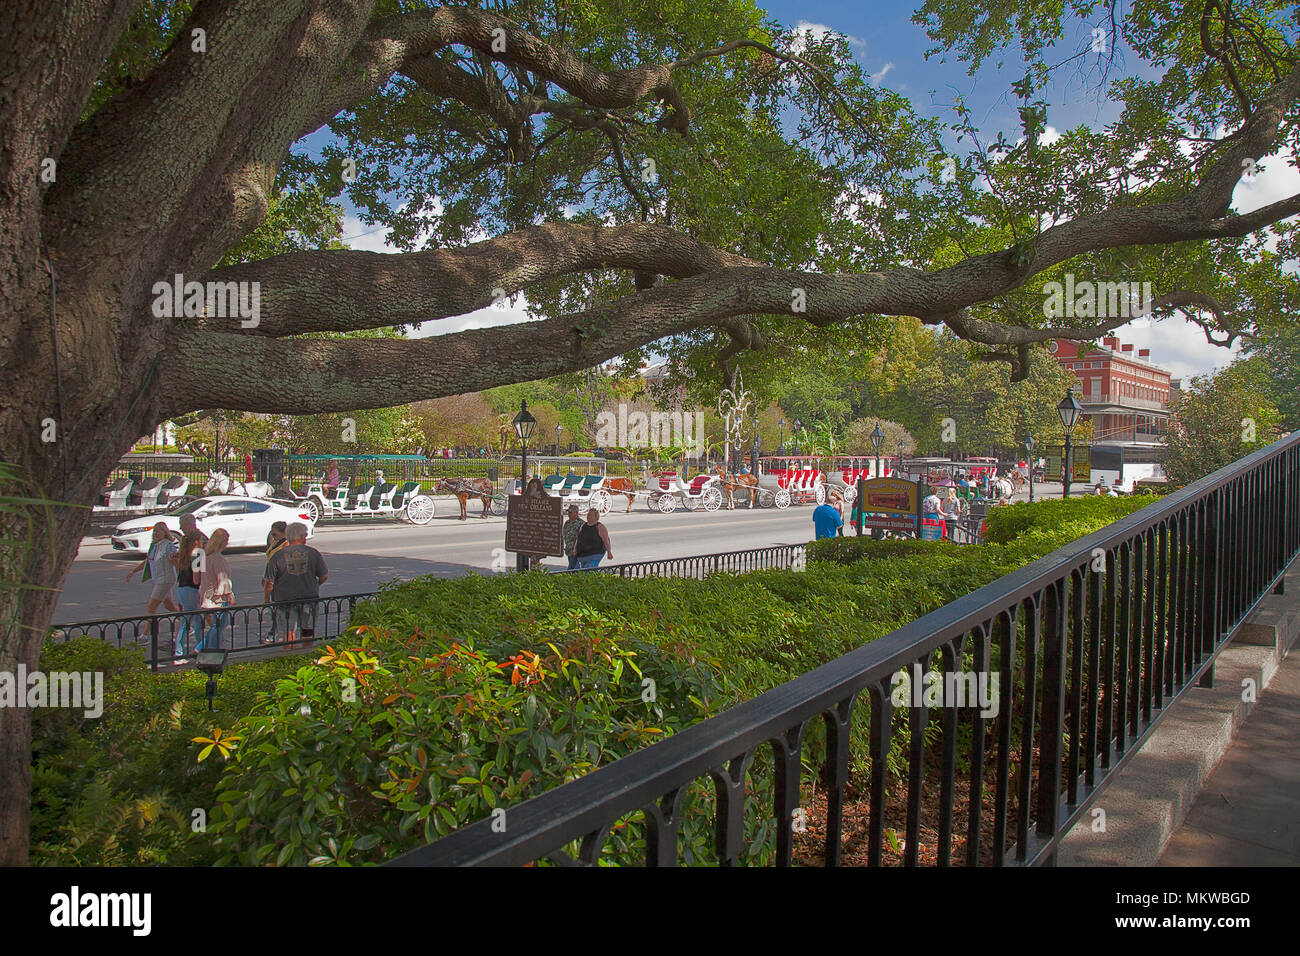 Aged oaks shade Decatur Street's walkways at the bottom of Jackson Square, New Orleans, Louisiana. - Stock Image